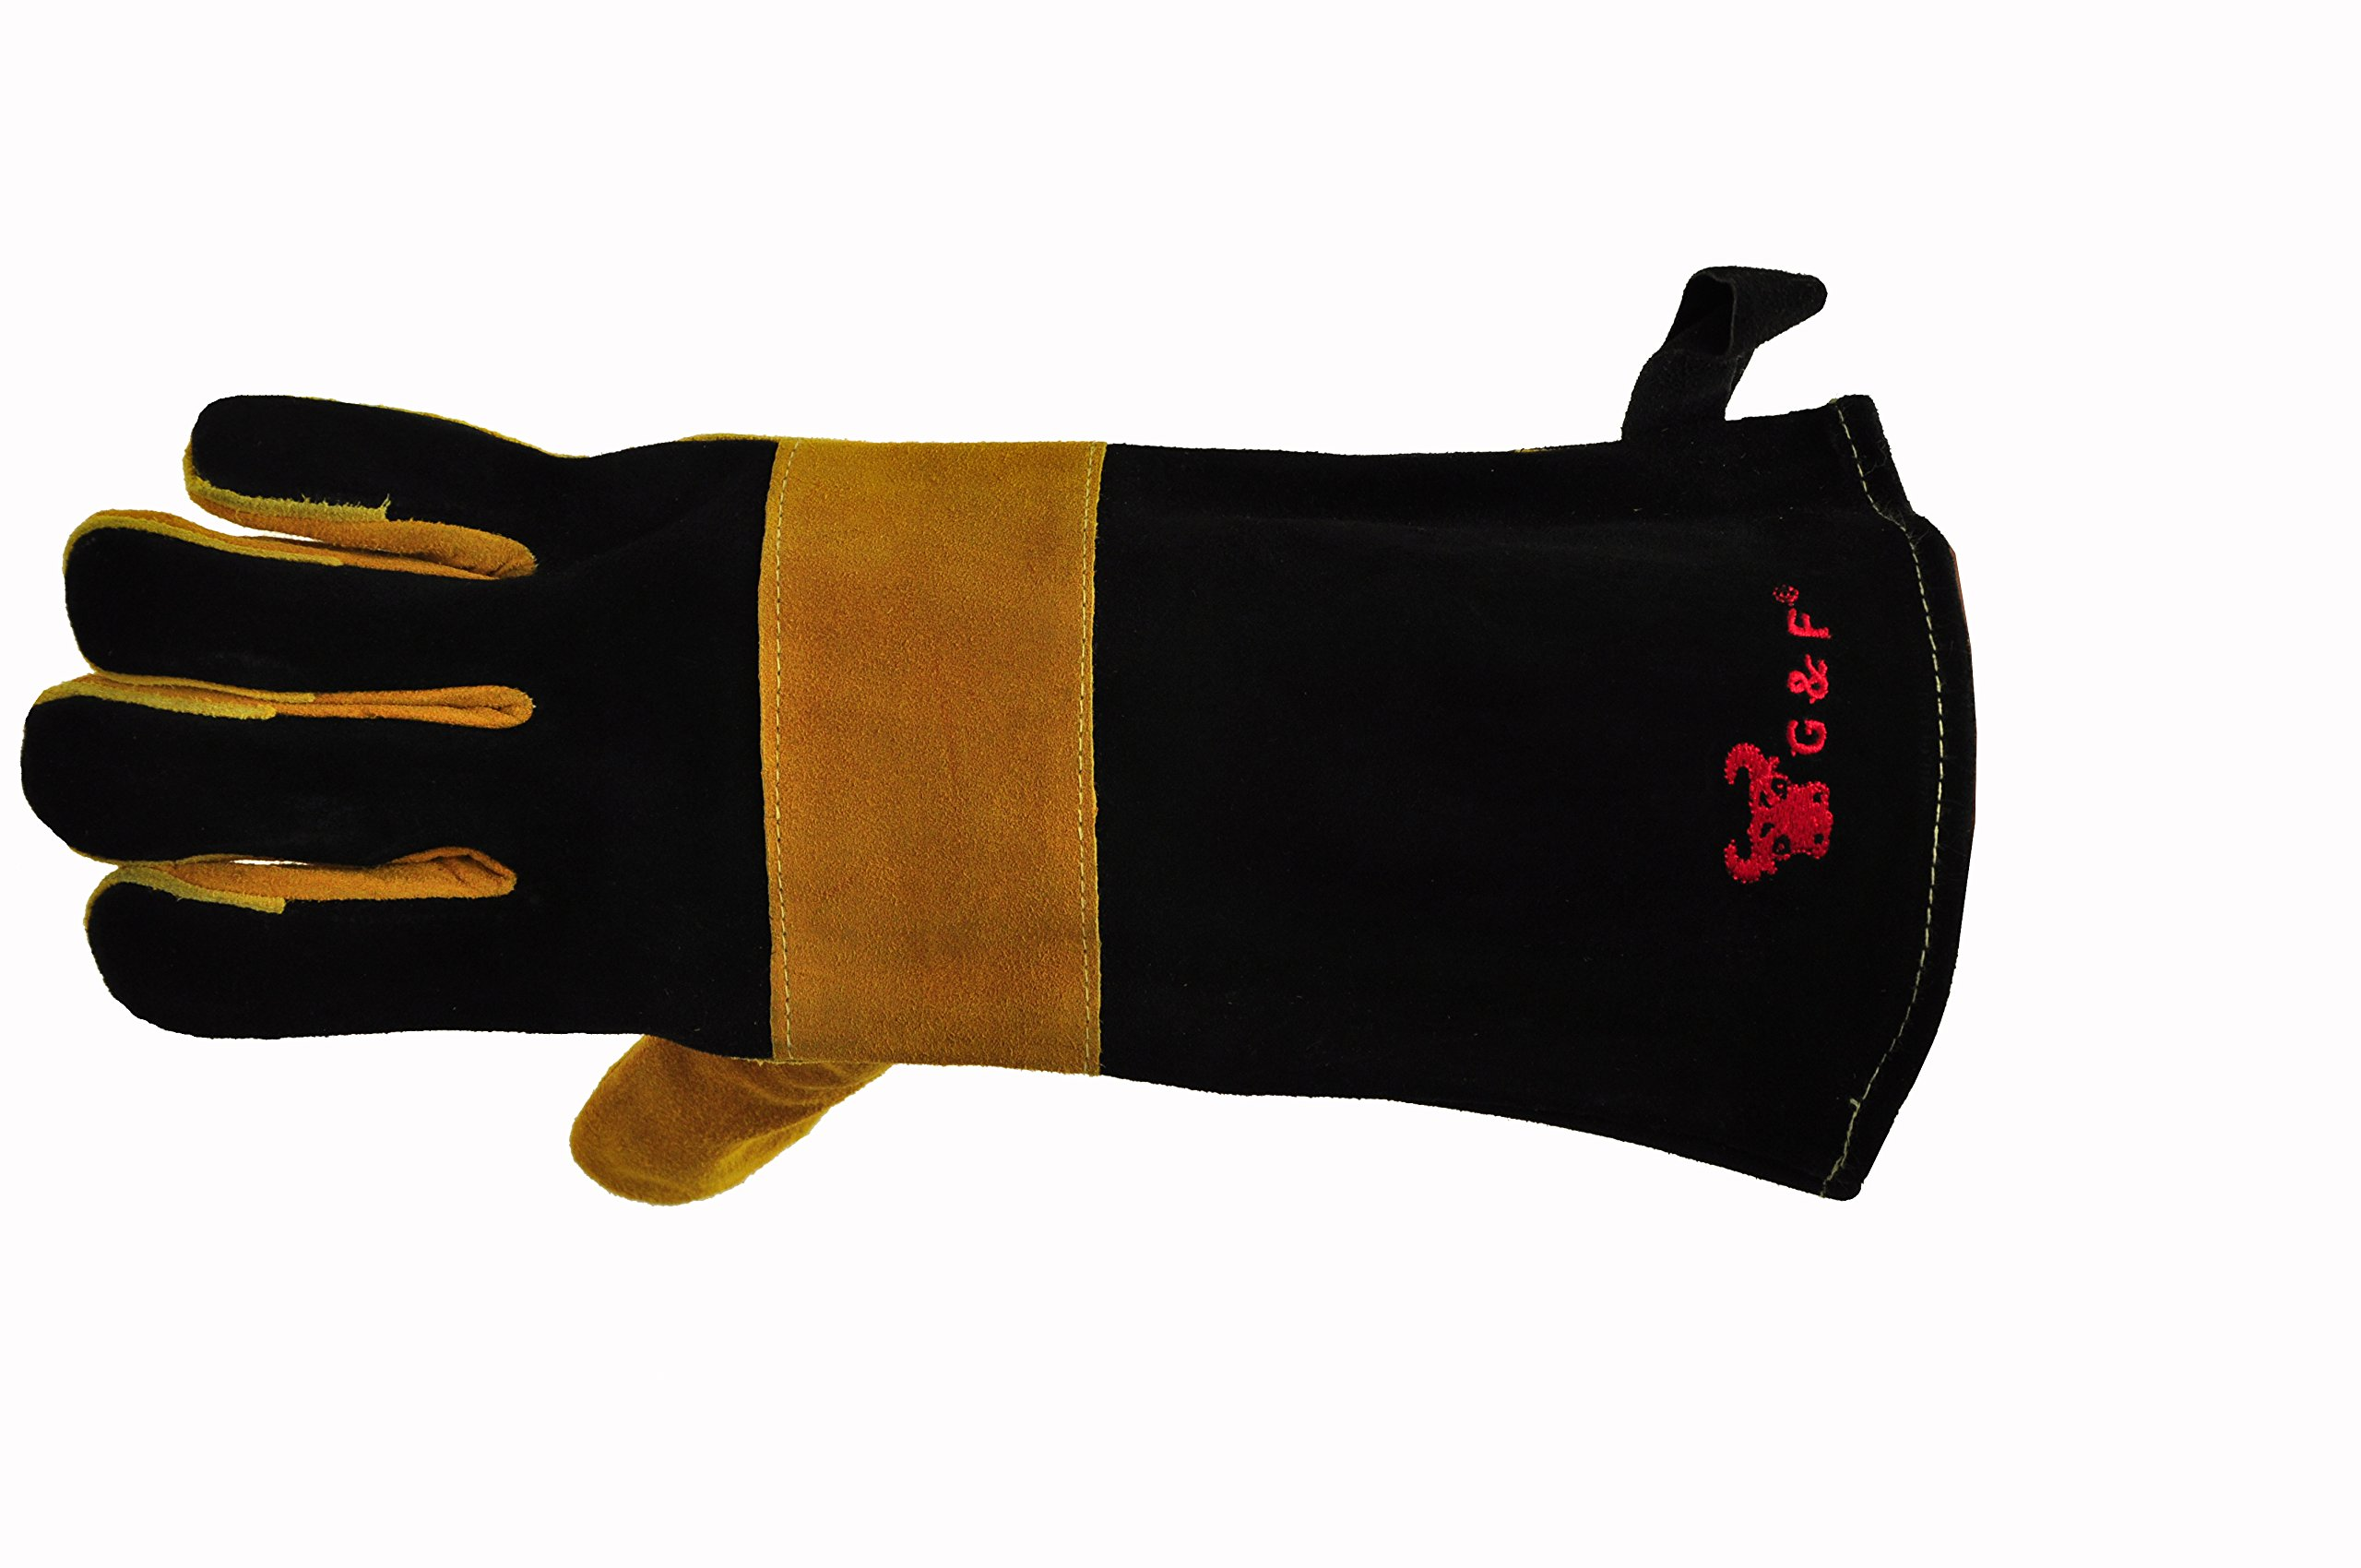 G & F 8113suedeleather Premium Suede Leather Gloves, BBQ Gloves, Grill Gloves, Fireplace Gloves, Cotton Lining with 14.5'' Extra Long Sleeve Heat Resistant Gloves,